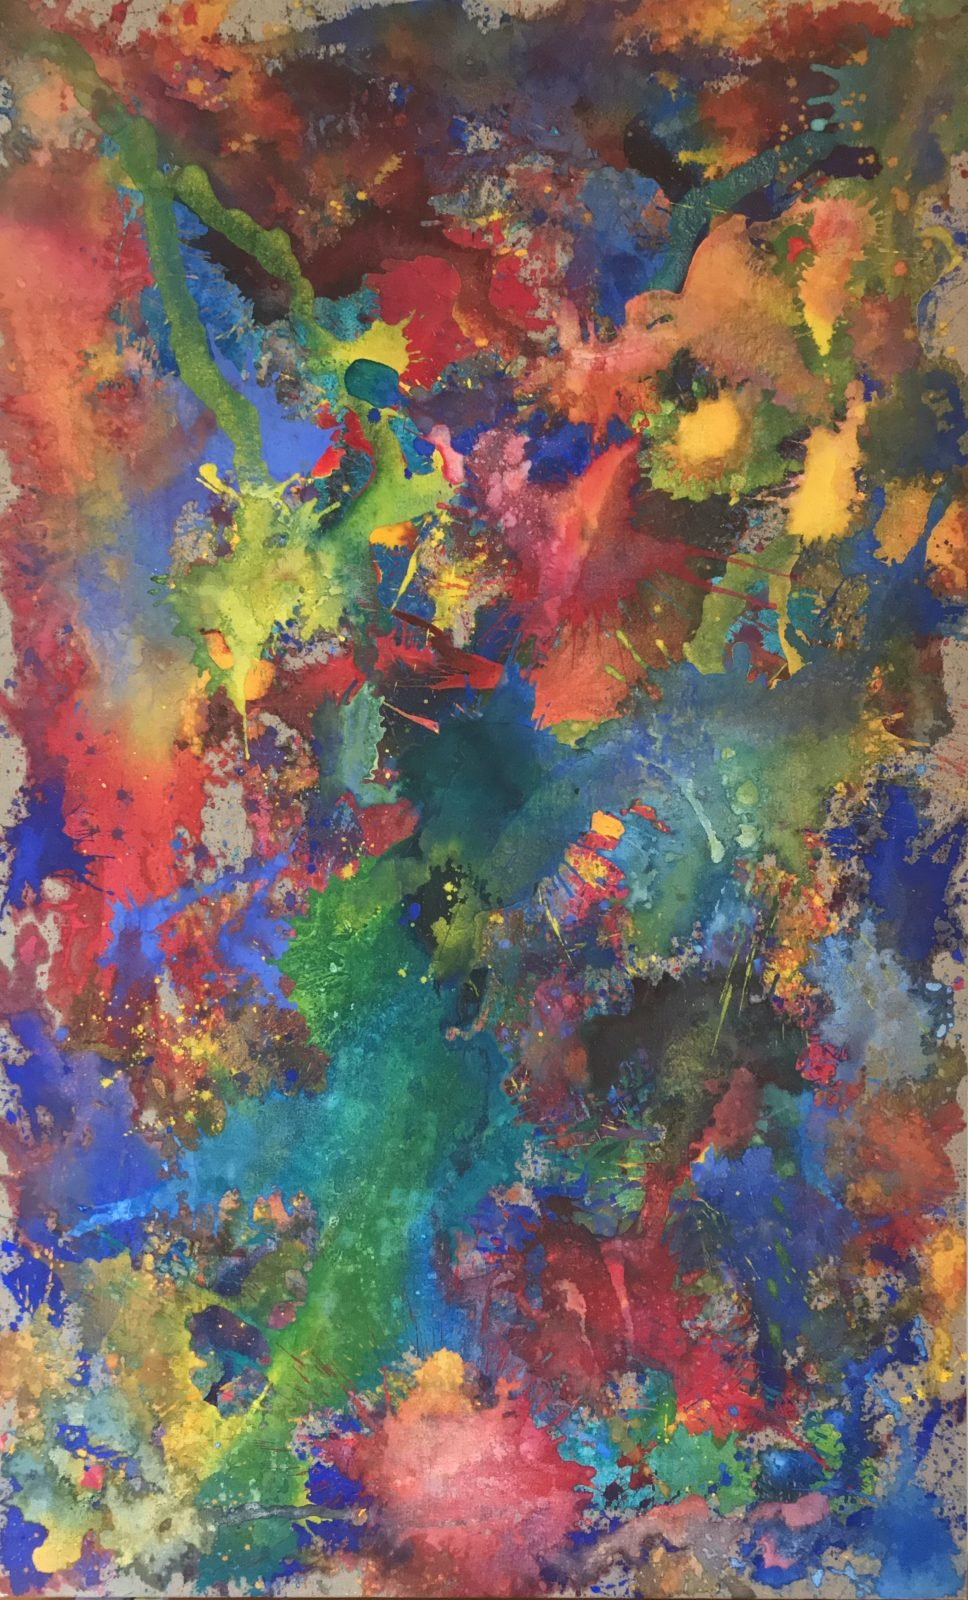 The Day the Sky Shattered and Flew Away 2 - an energetic and explosive melange of greens, blues, pinks, yellows and oranges vie for attention in this centripetal image. 183cm x 112cm acrylic on thick ecru canvas.